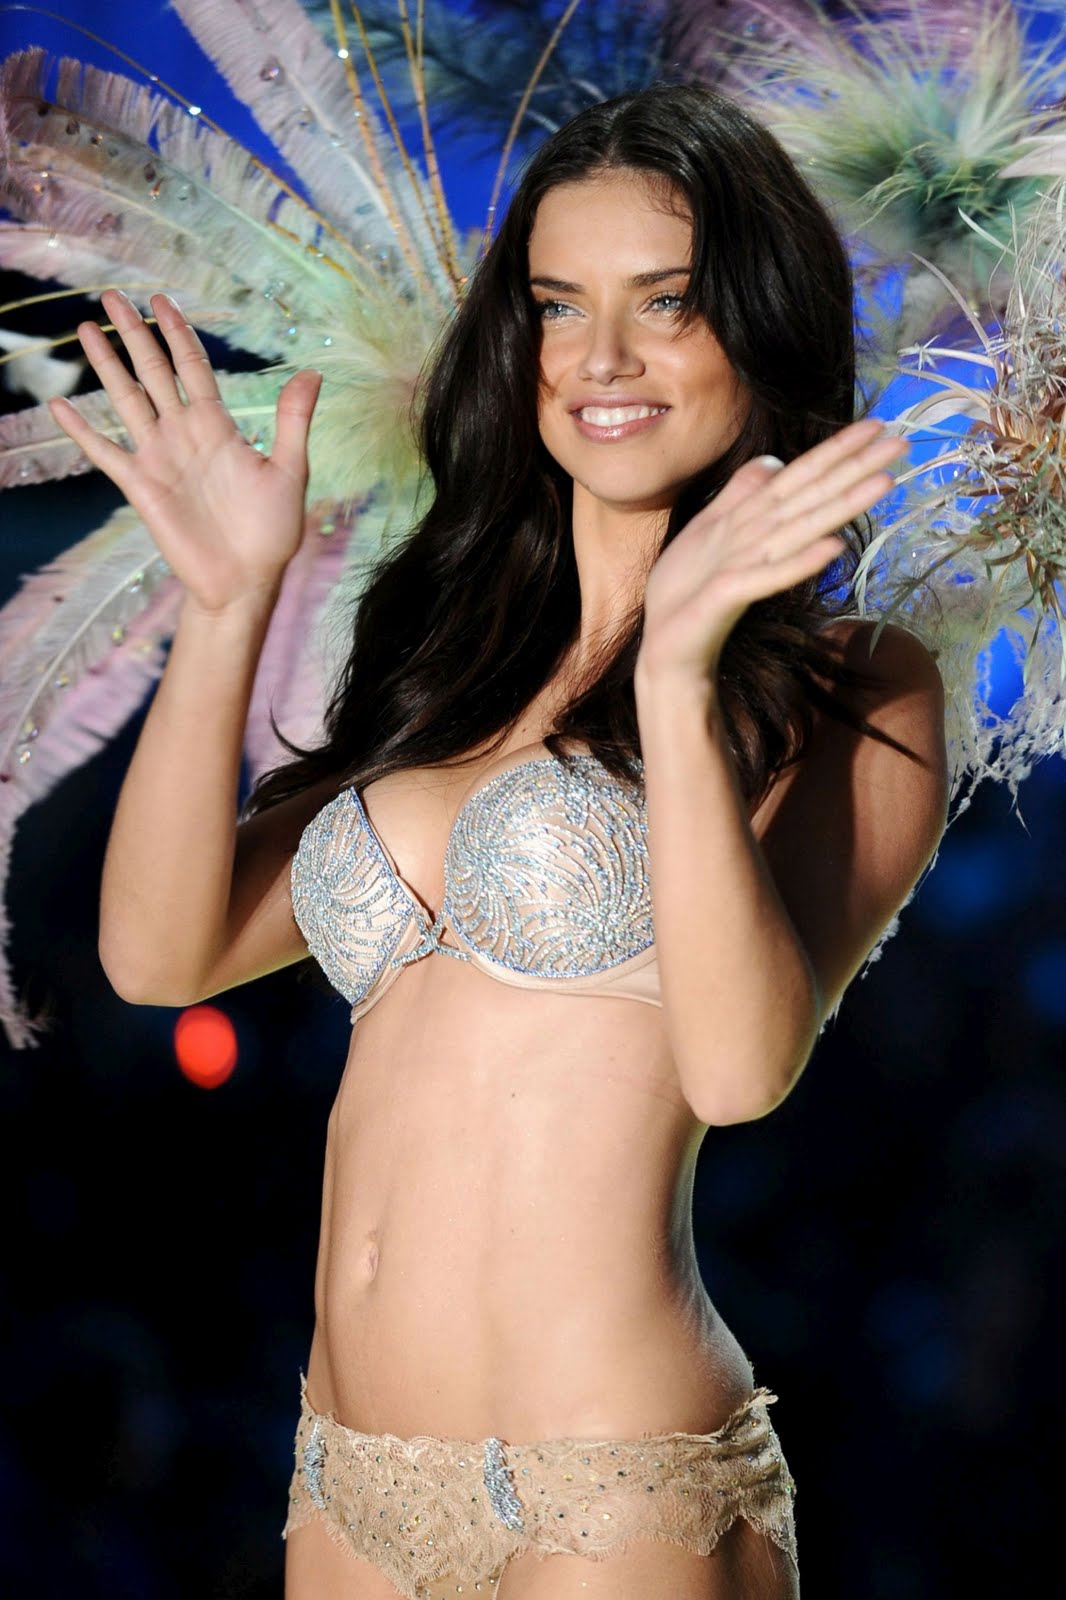 http://3.bp.blogspot.com/-4z9aO_U_QAk/TaW801EfBUI/AAAAAAAAA1M/QxRgYrsexH0/s1600/Adriana-Lima-in-the-2-million-Bombshell-Fantasy-Bra-at-Victoria%25E2%2580%2599s-Secret-Fashion-Show.jpg